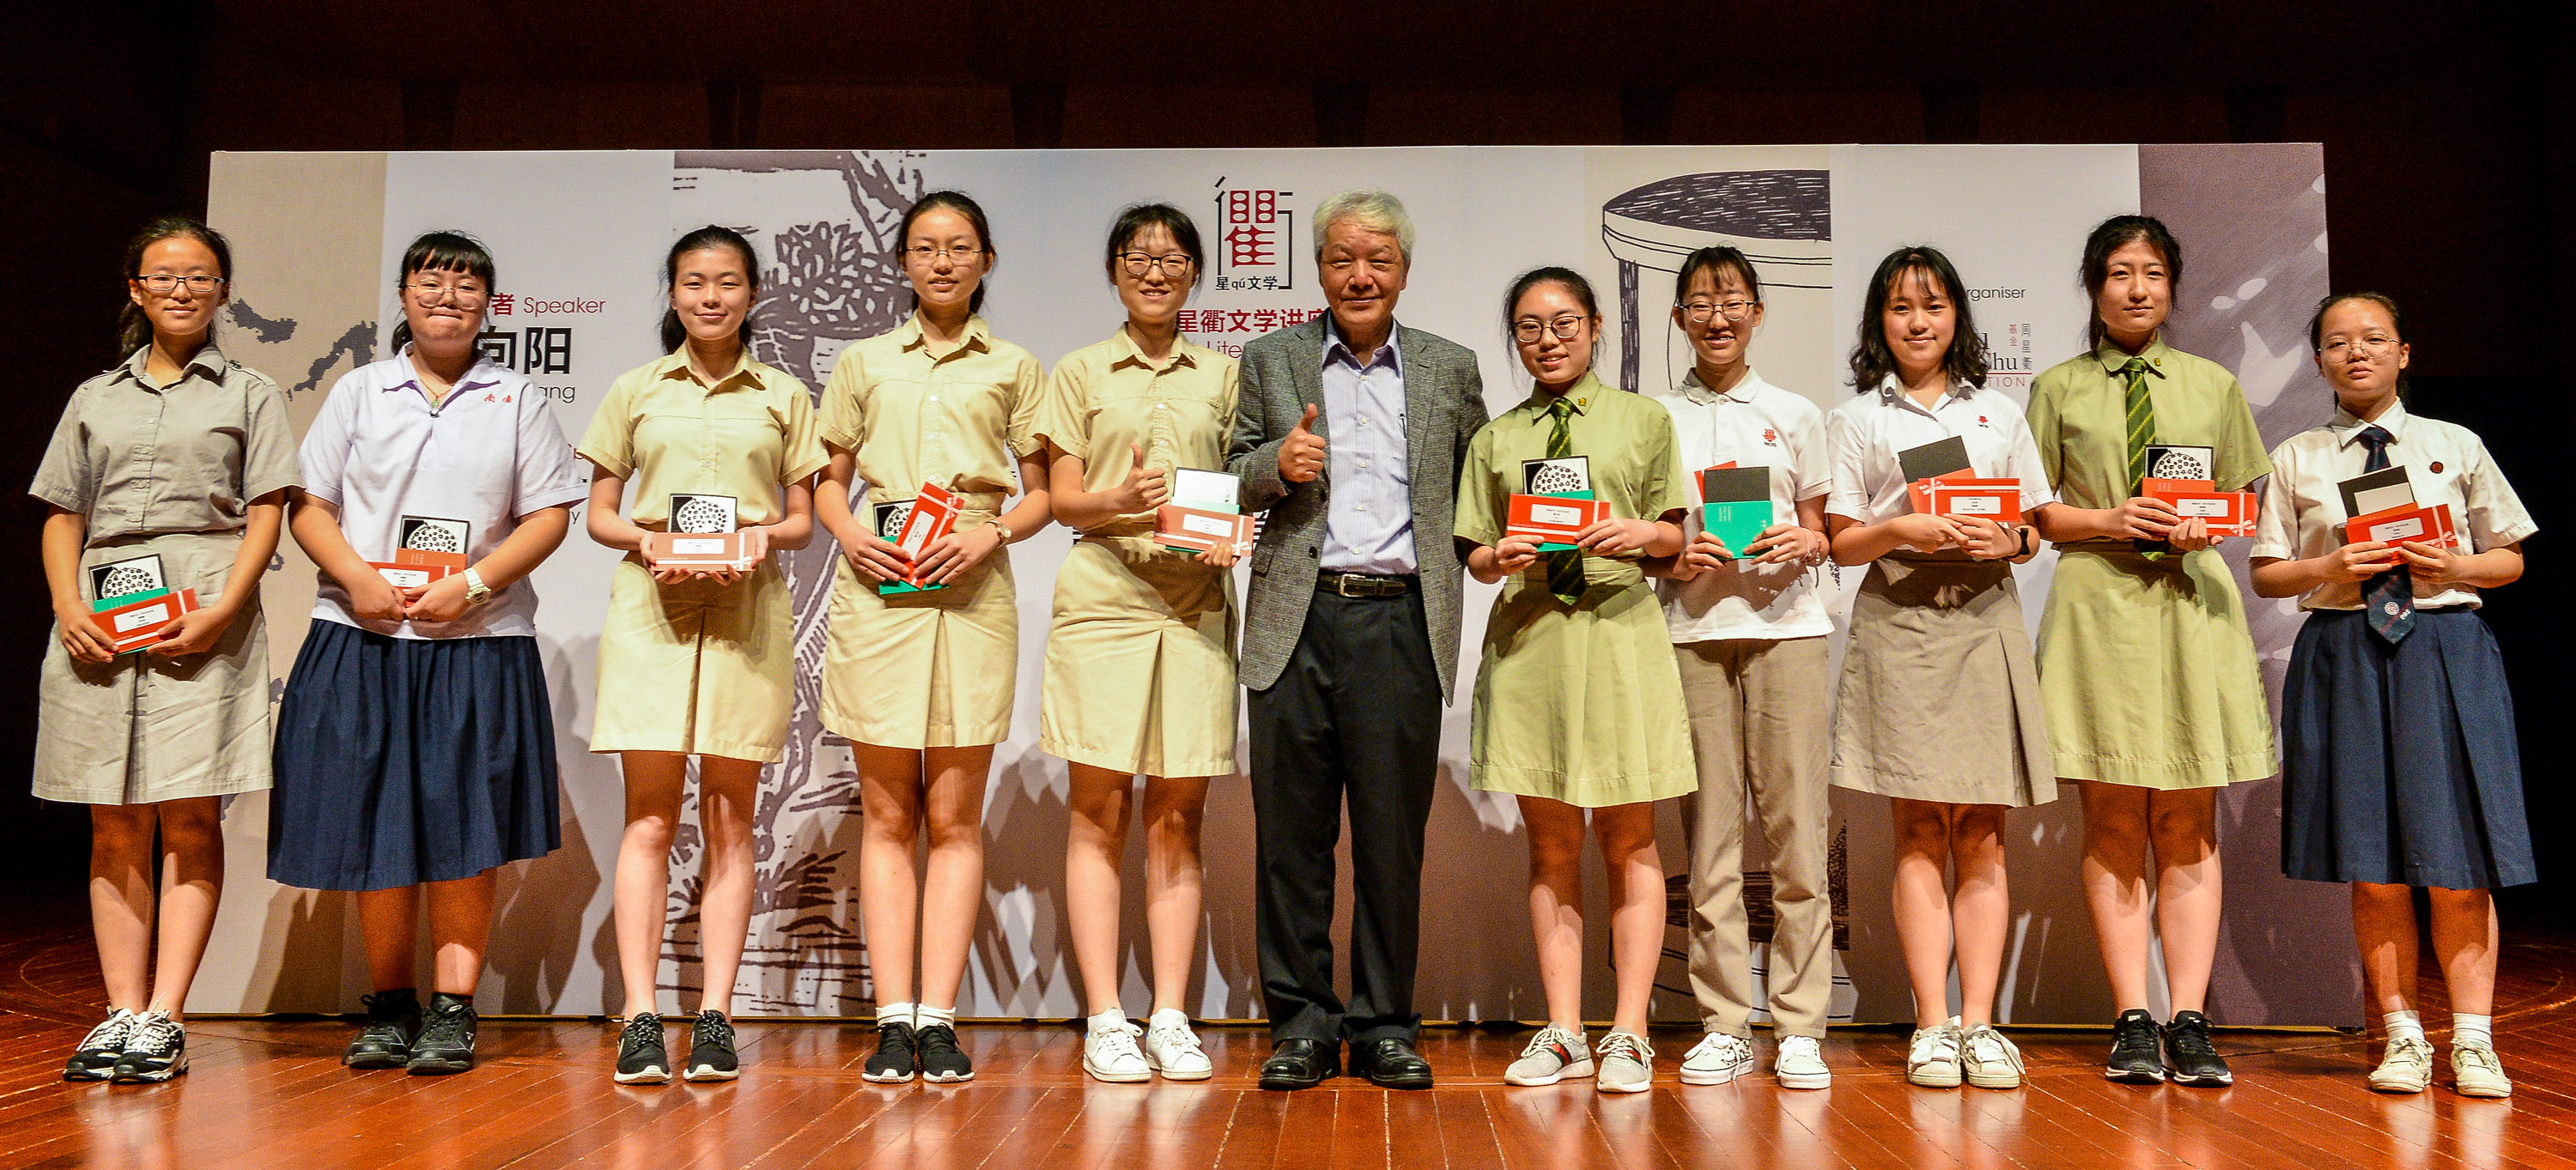 Student winners of the 2018 Sing Chu Poetry Competition, alongside the judge for the competition, Xiang Yang